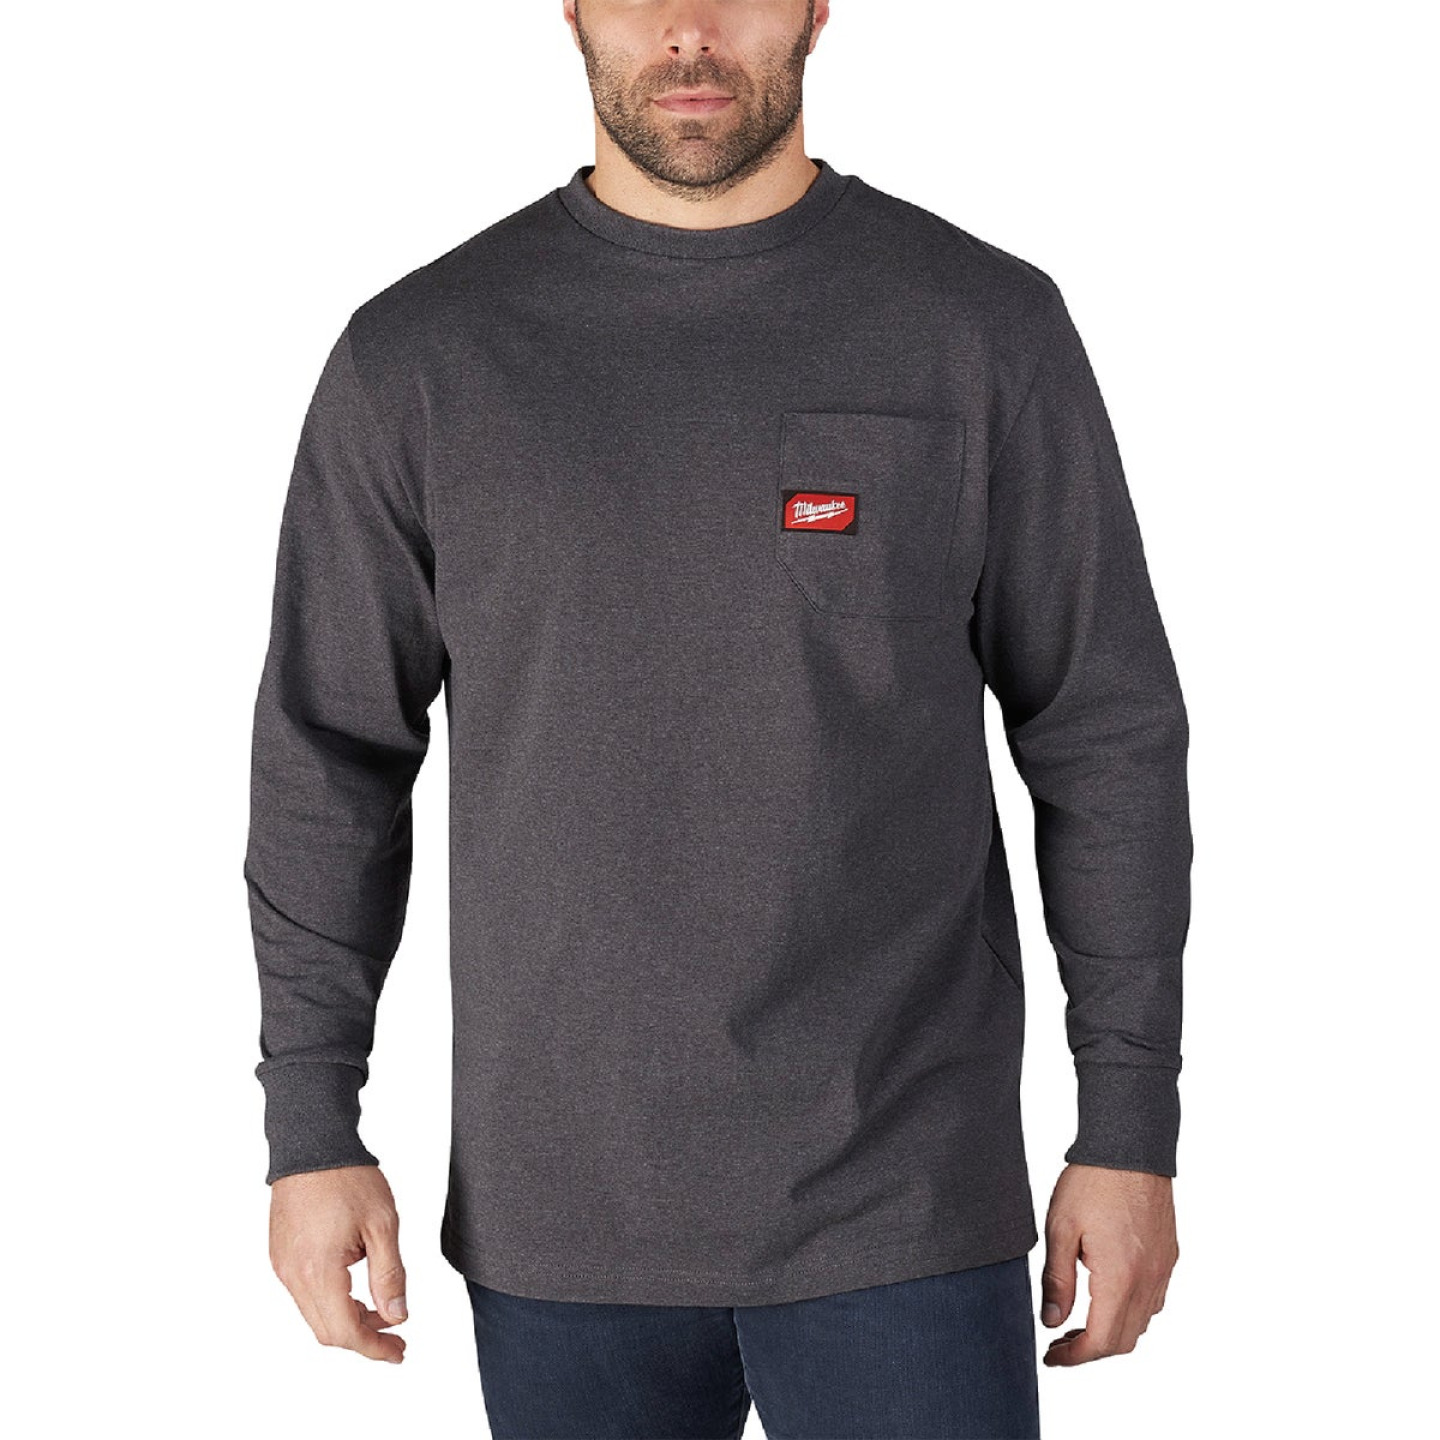 Milwaukee XL Gray Long Sleeve Men's Heavy-Duty Pocket Shirt Image 1